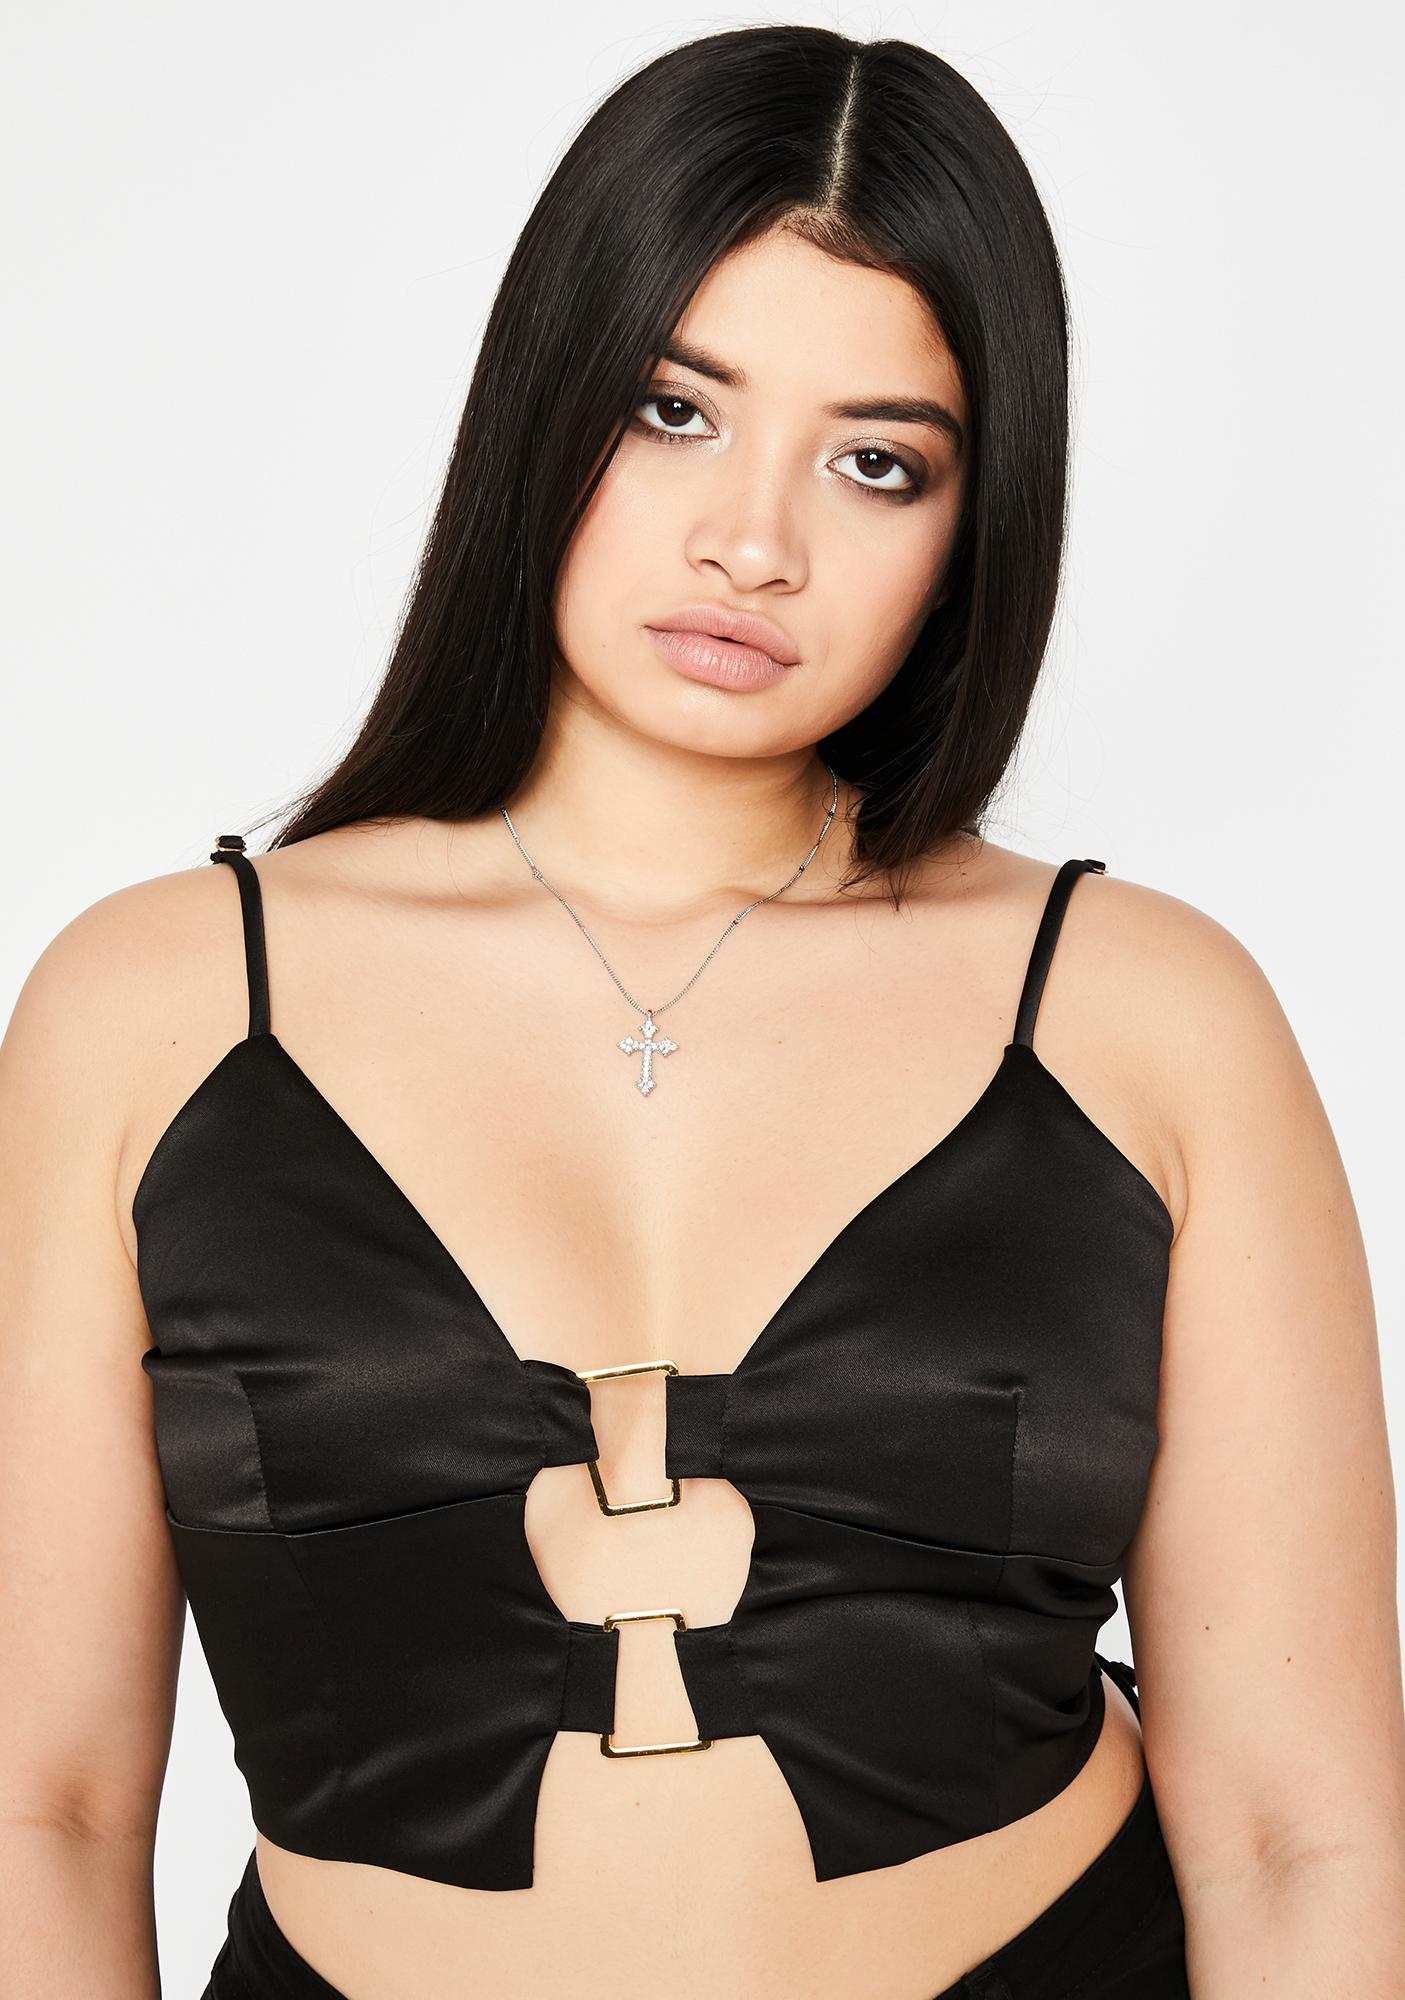 Gonna Lose My Love Cut Out Top